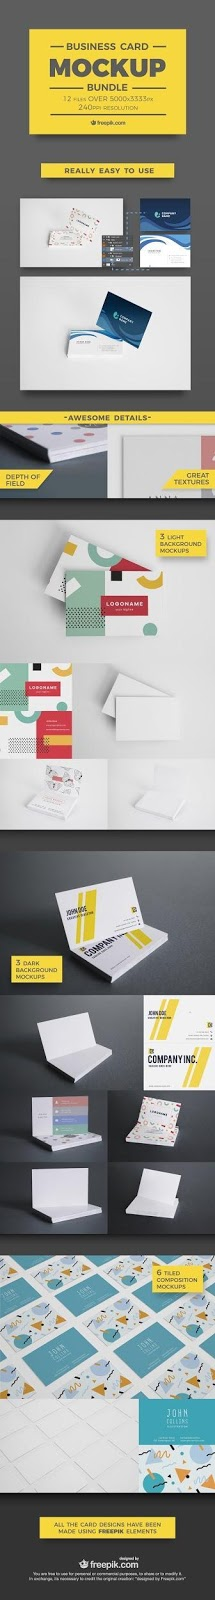 Professional business card mockup bundle freepik designrfix find more mockups for all your designs at freepik from merchandising to web design to shirts and mugs there are mockups for everything reheart Images